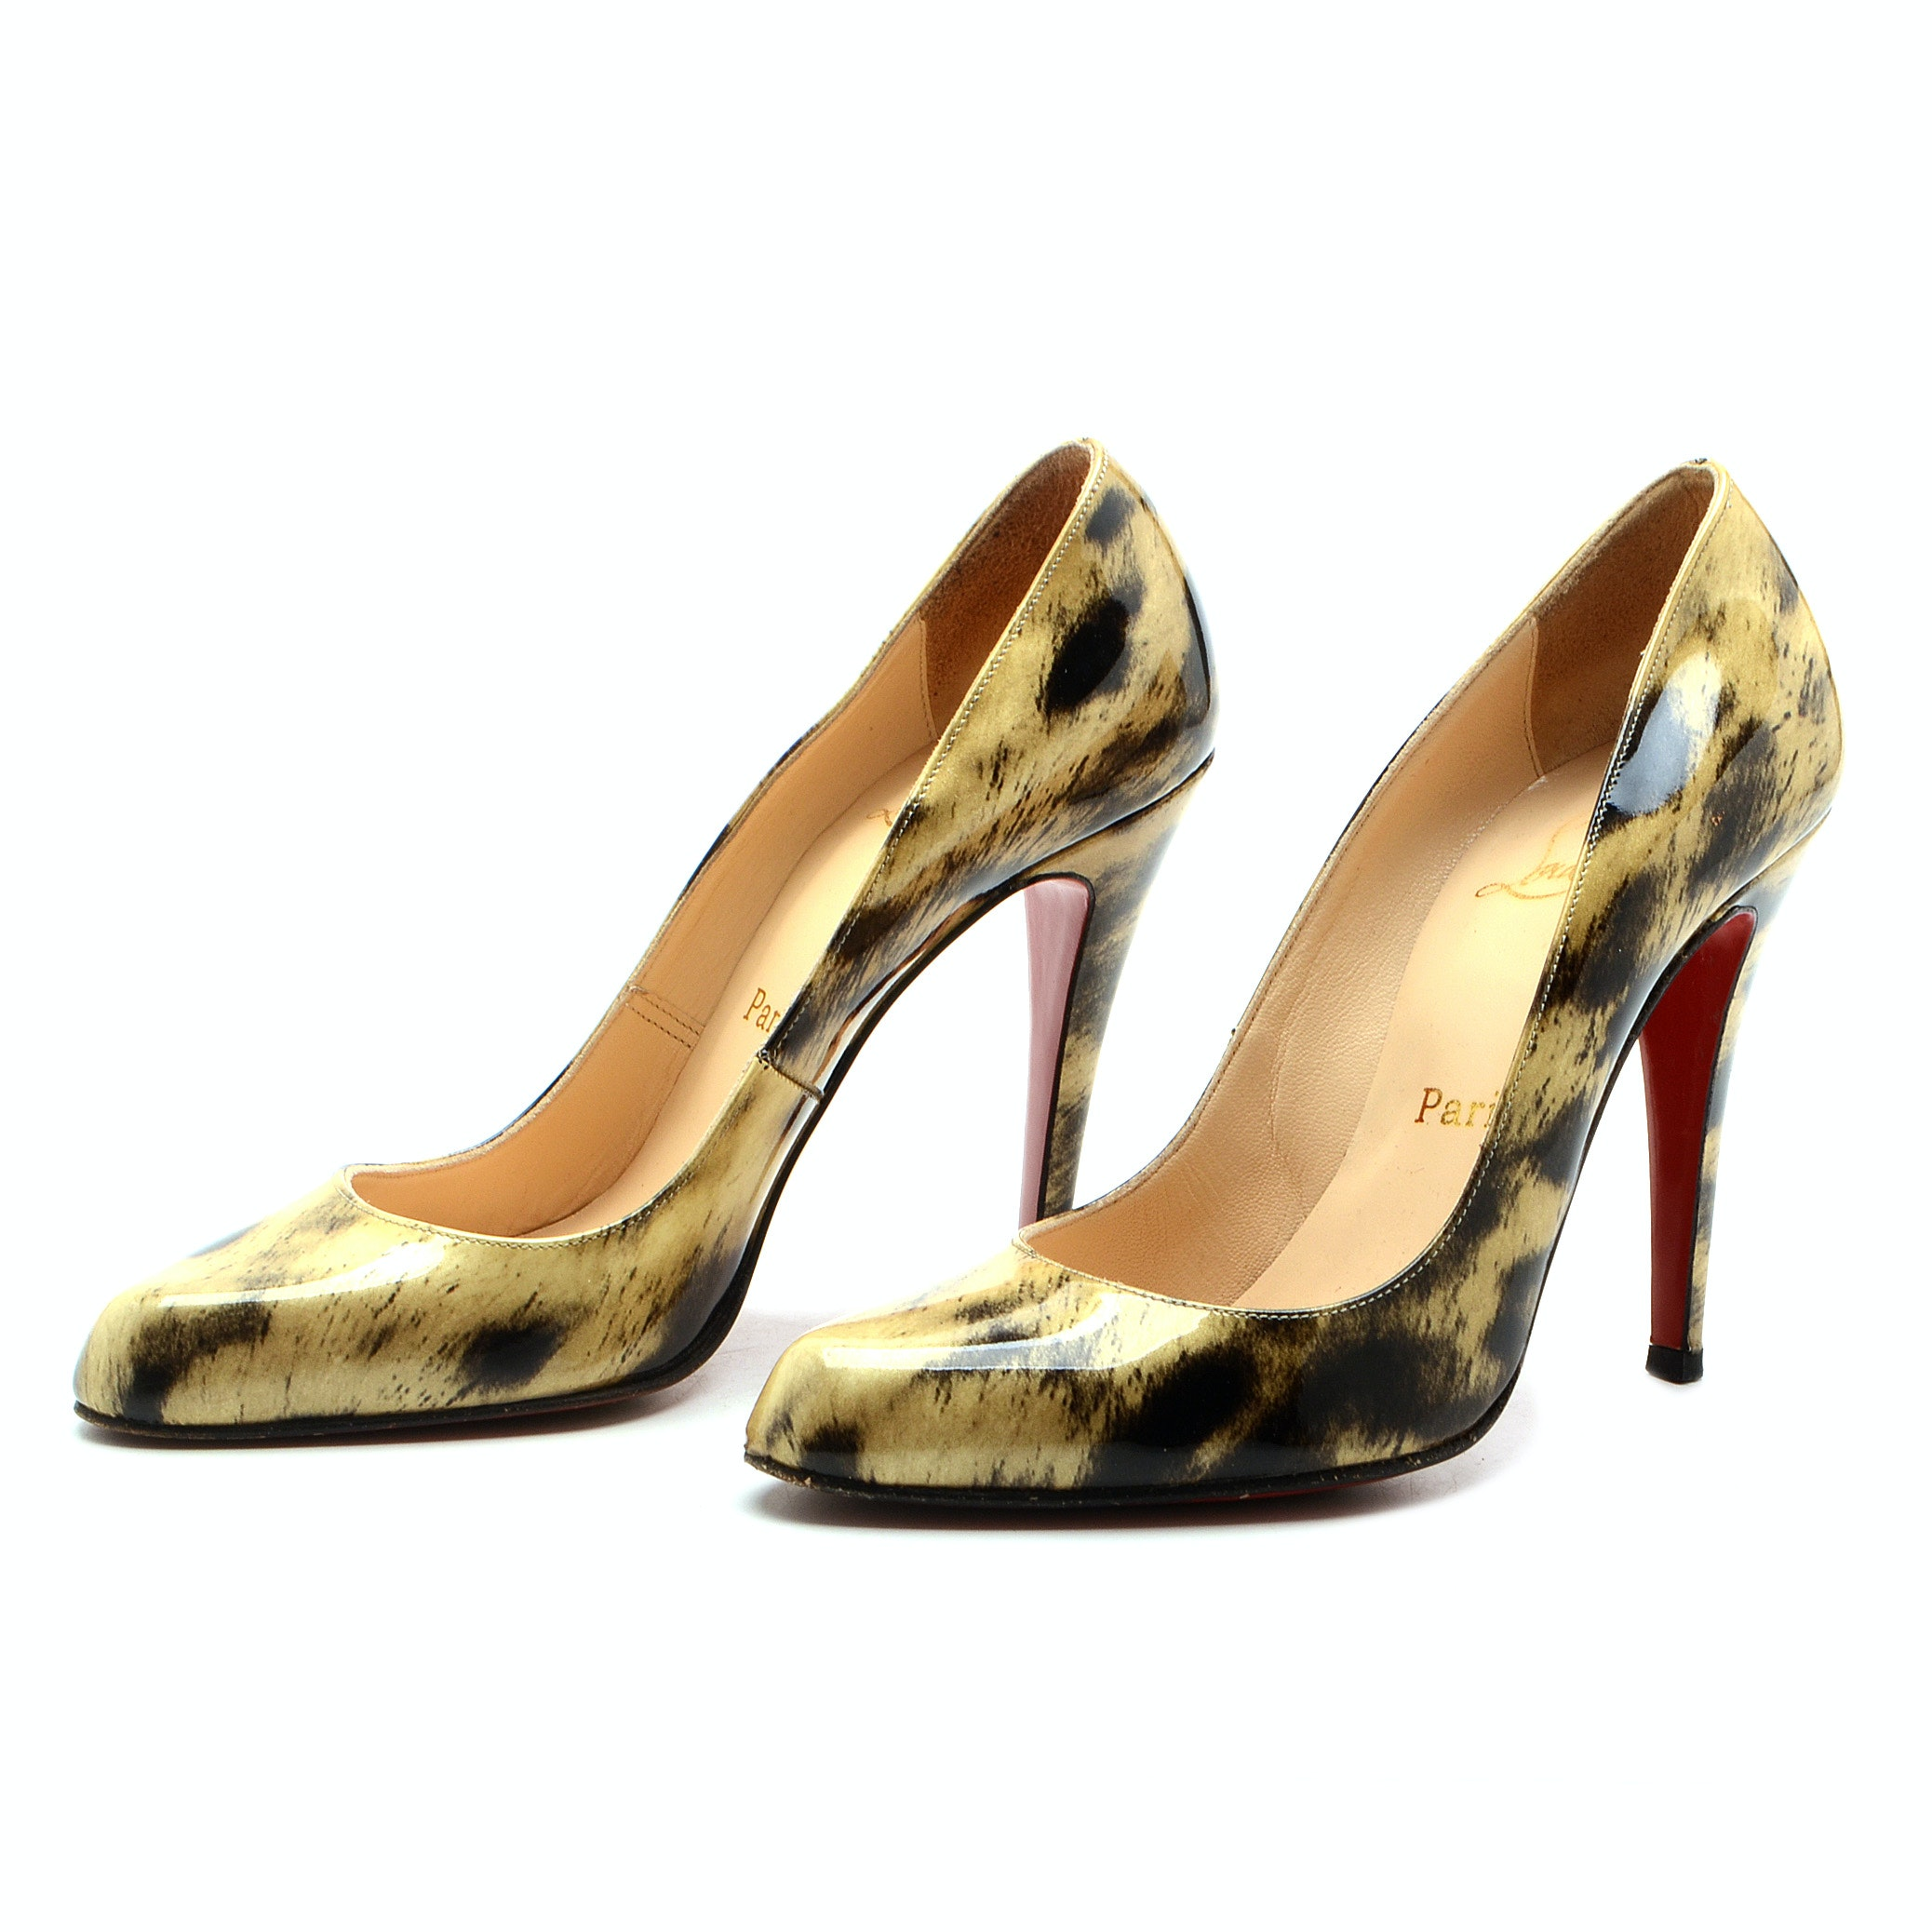 Christain Louboutin Patent Leather Dress Pumps